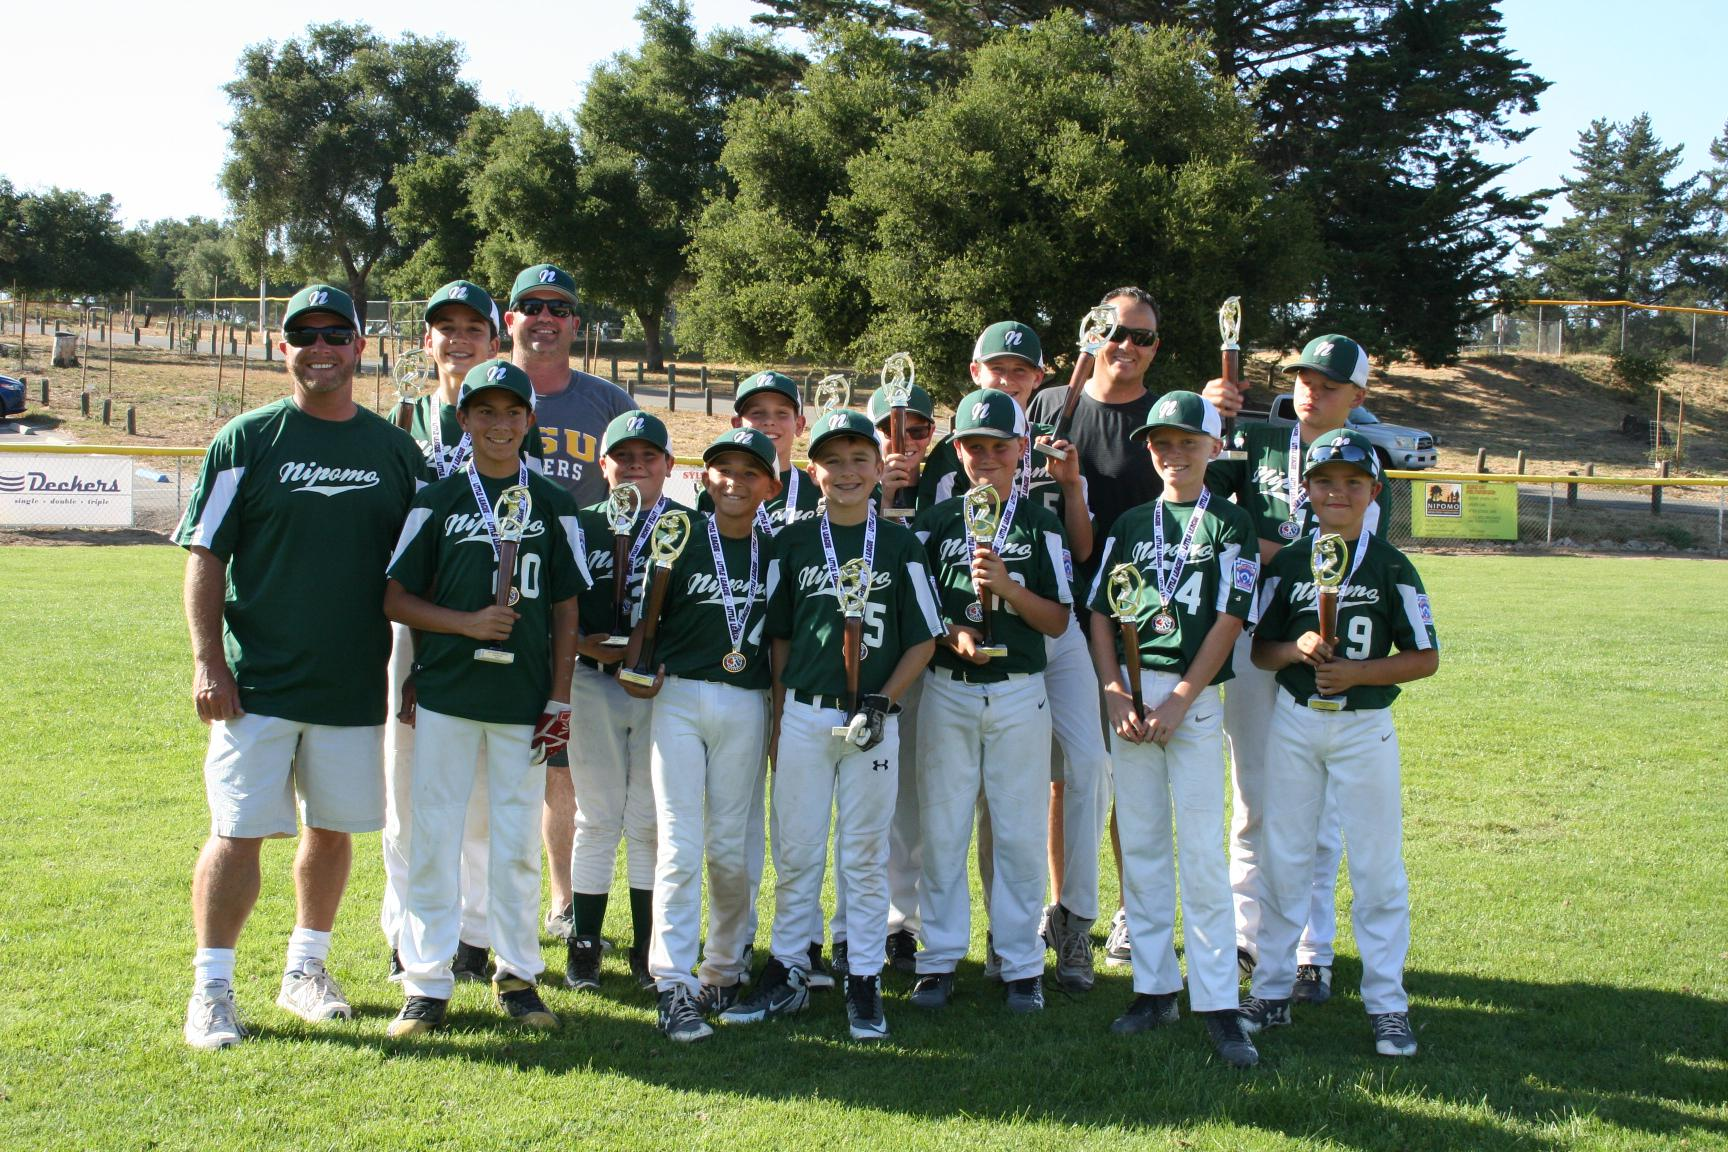 2018 NLL Majors Division 2nd Place - Mustangs